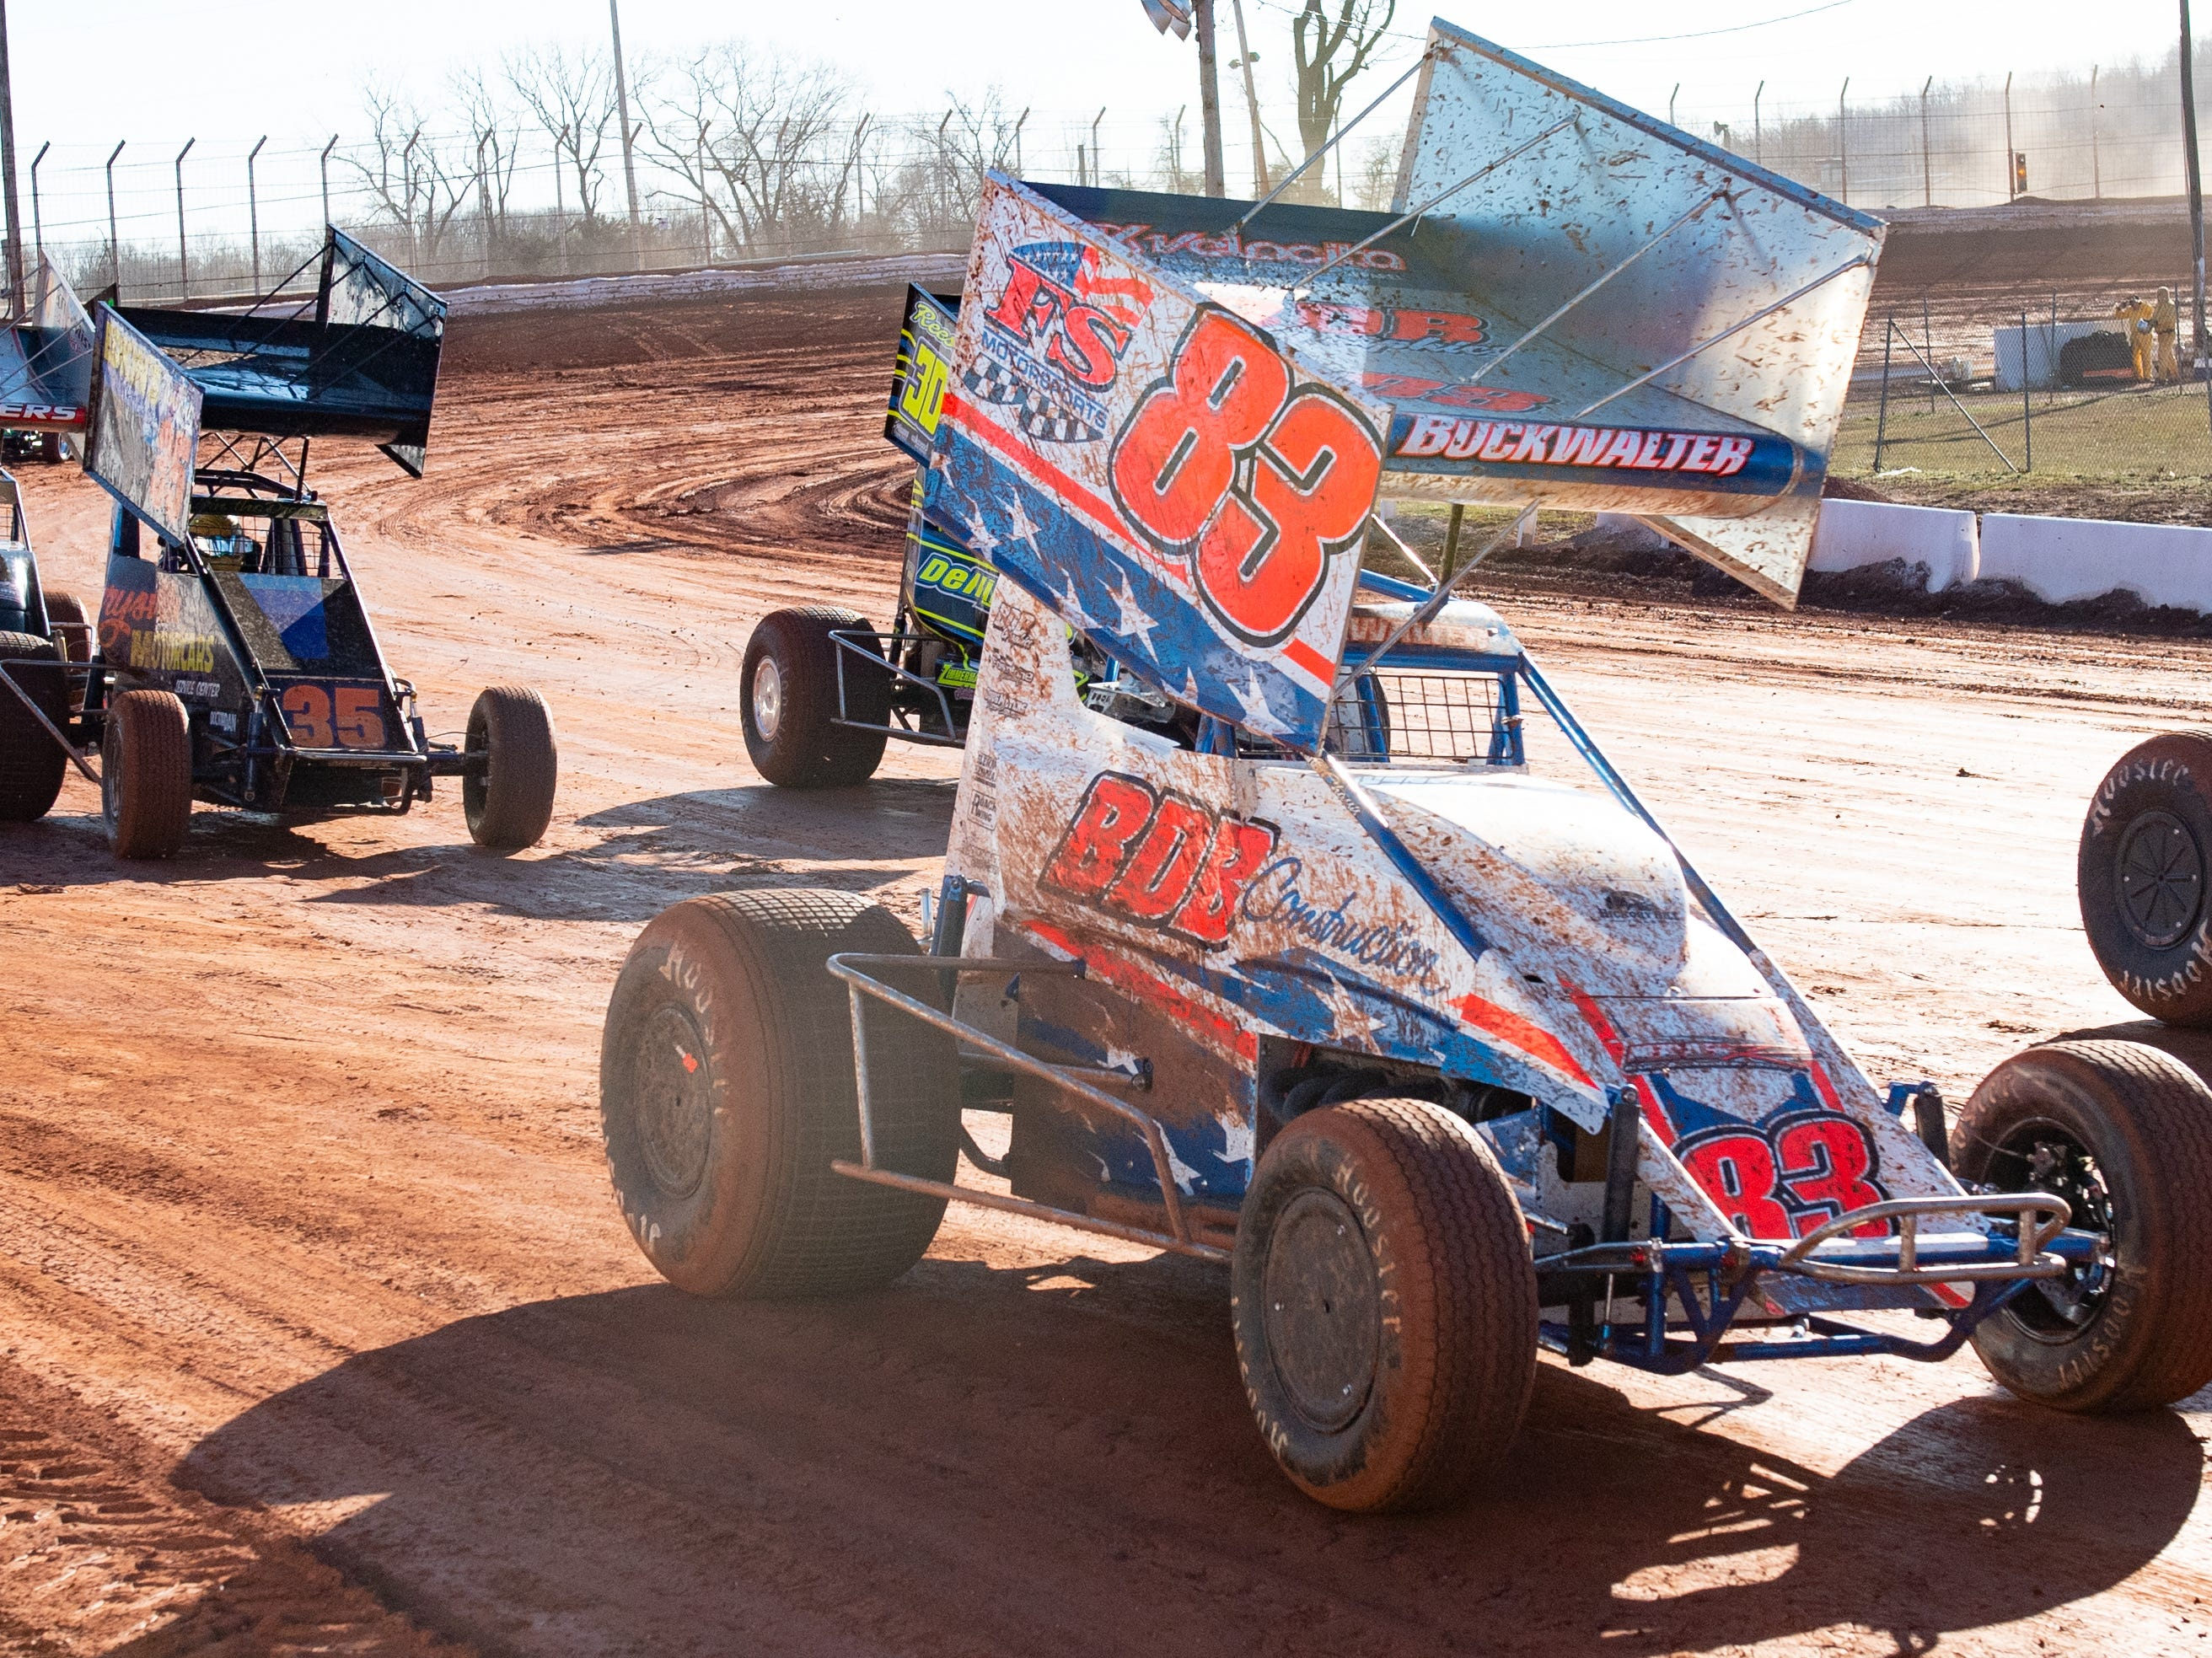 Bruce Buckwalter Jr., driving car #83, is in the middle of the pack during the Super Sportsman race at BAPS Motor Speedway, March 23, 2019.